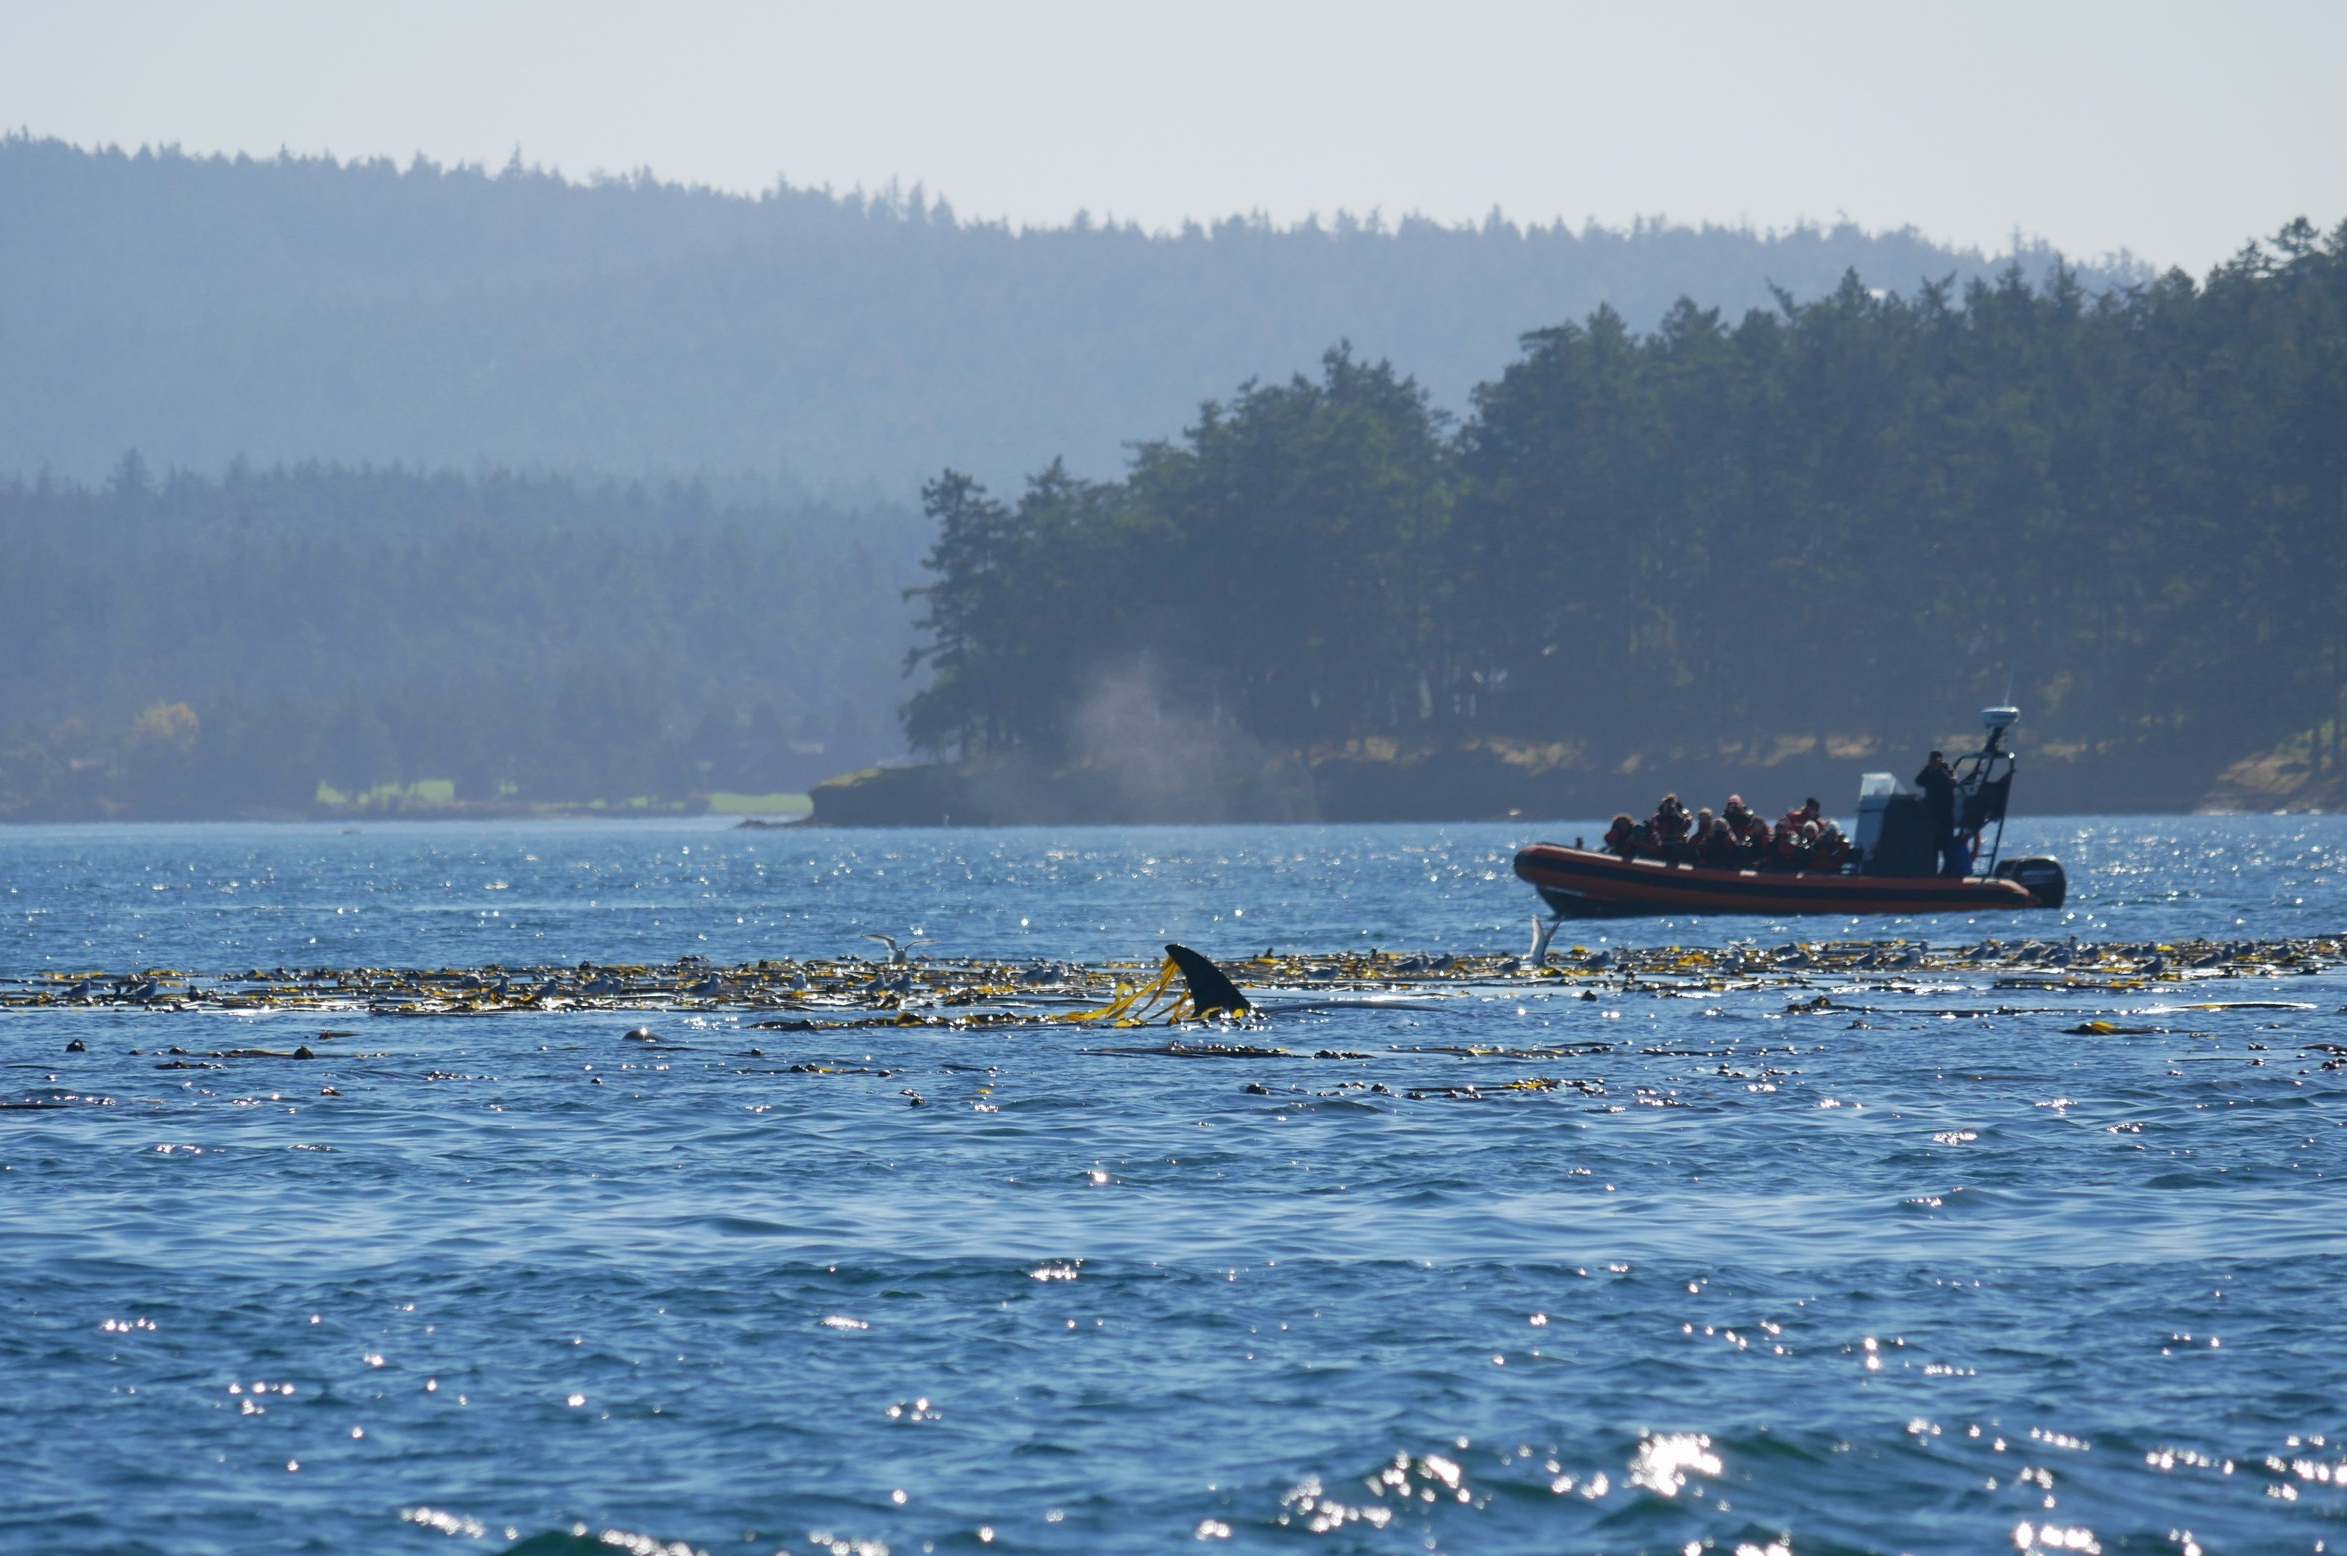 An orca surfacing in the kelp!